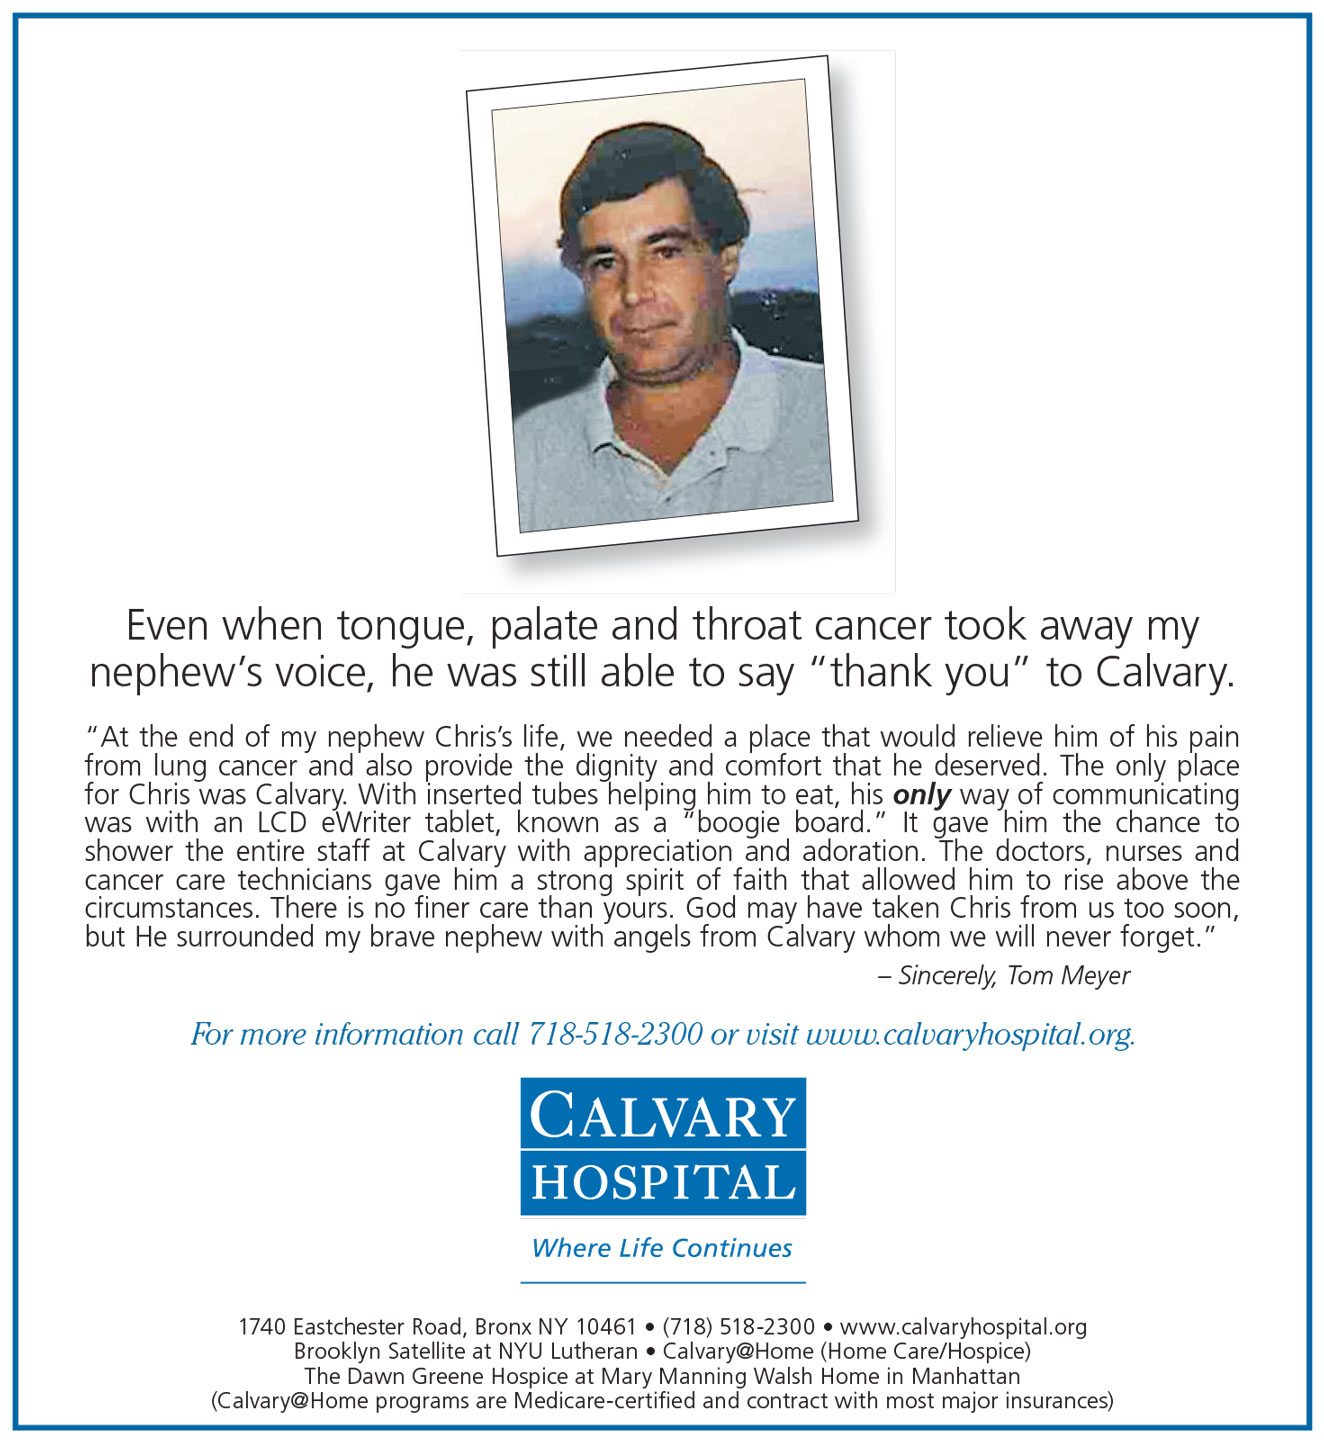 Calvary Hospital: Specializing in Palliative and Hospice Care - The